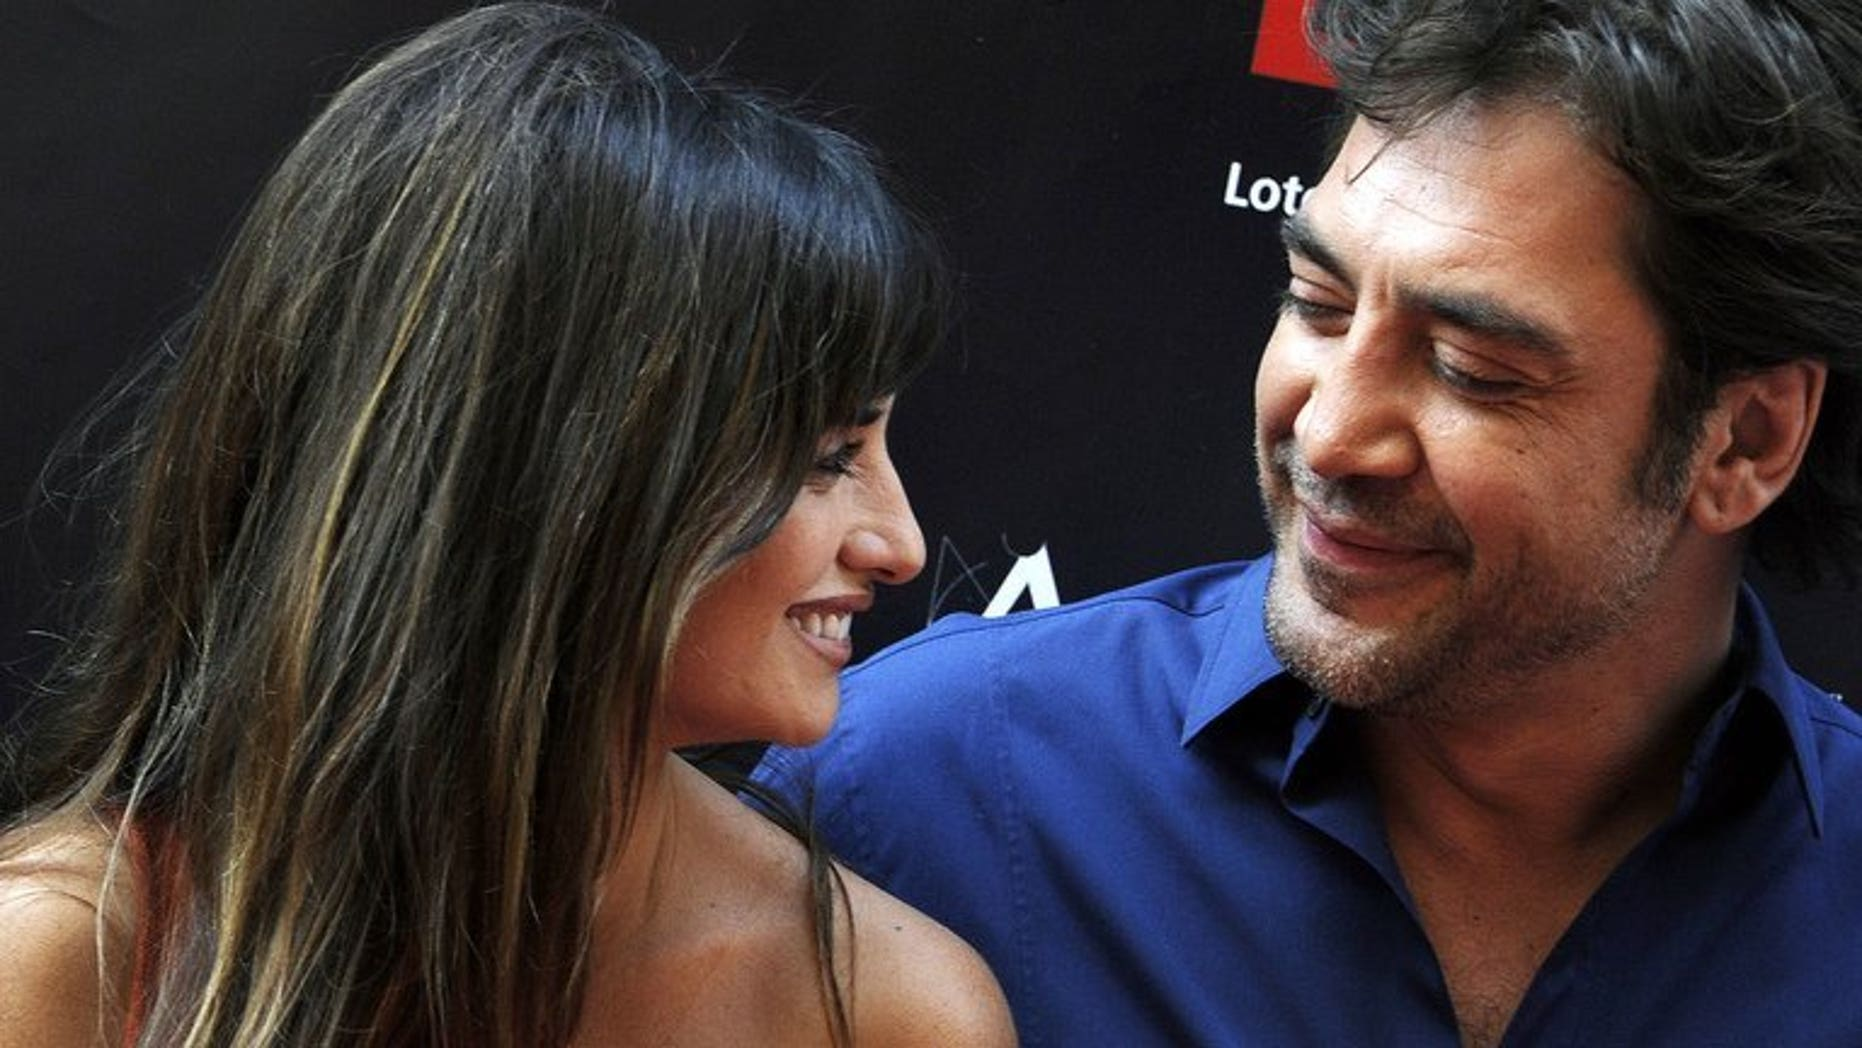 Spanish actress Penelope Cruz talks with her husband, Spanish actor Javier Bardem in Madrid on June 27, 2011. The Oscar-winning Spanish film stars had their second child--a girl according to Spanish media reports.